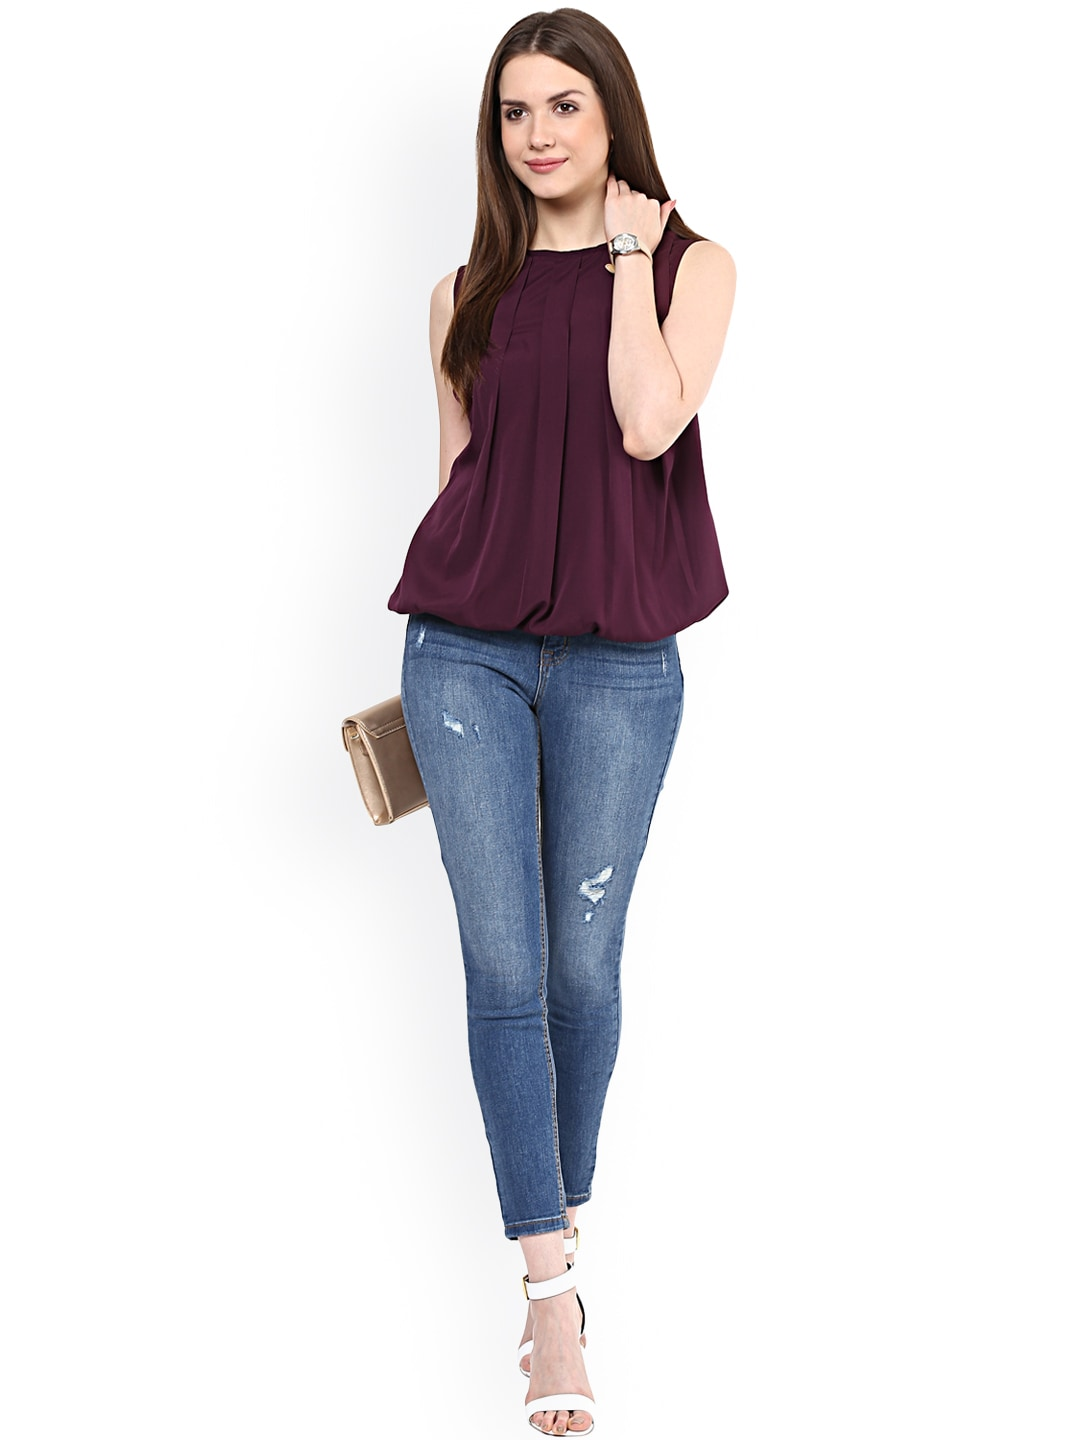 Find great deals on eBay for jean tops. Shop with confidence.